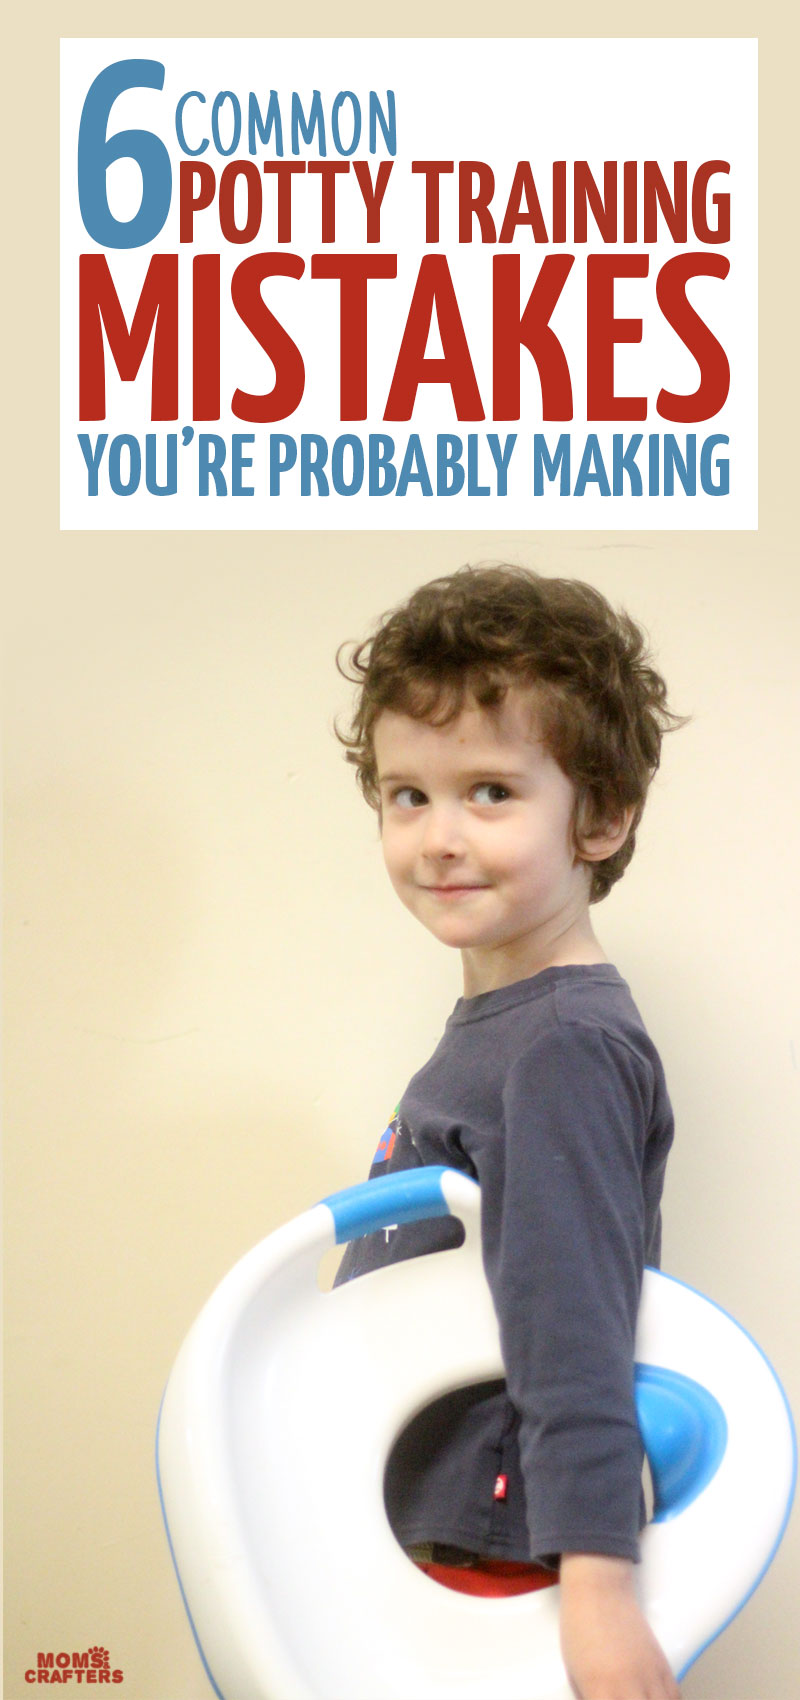 Potty Training Mistakes: 6 common mistakes most moms make!